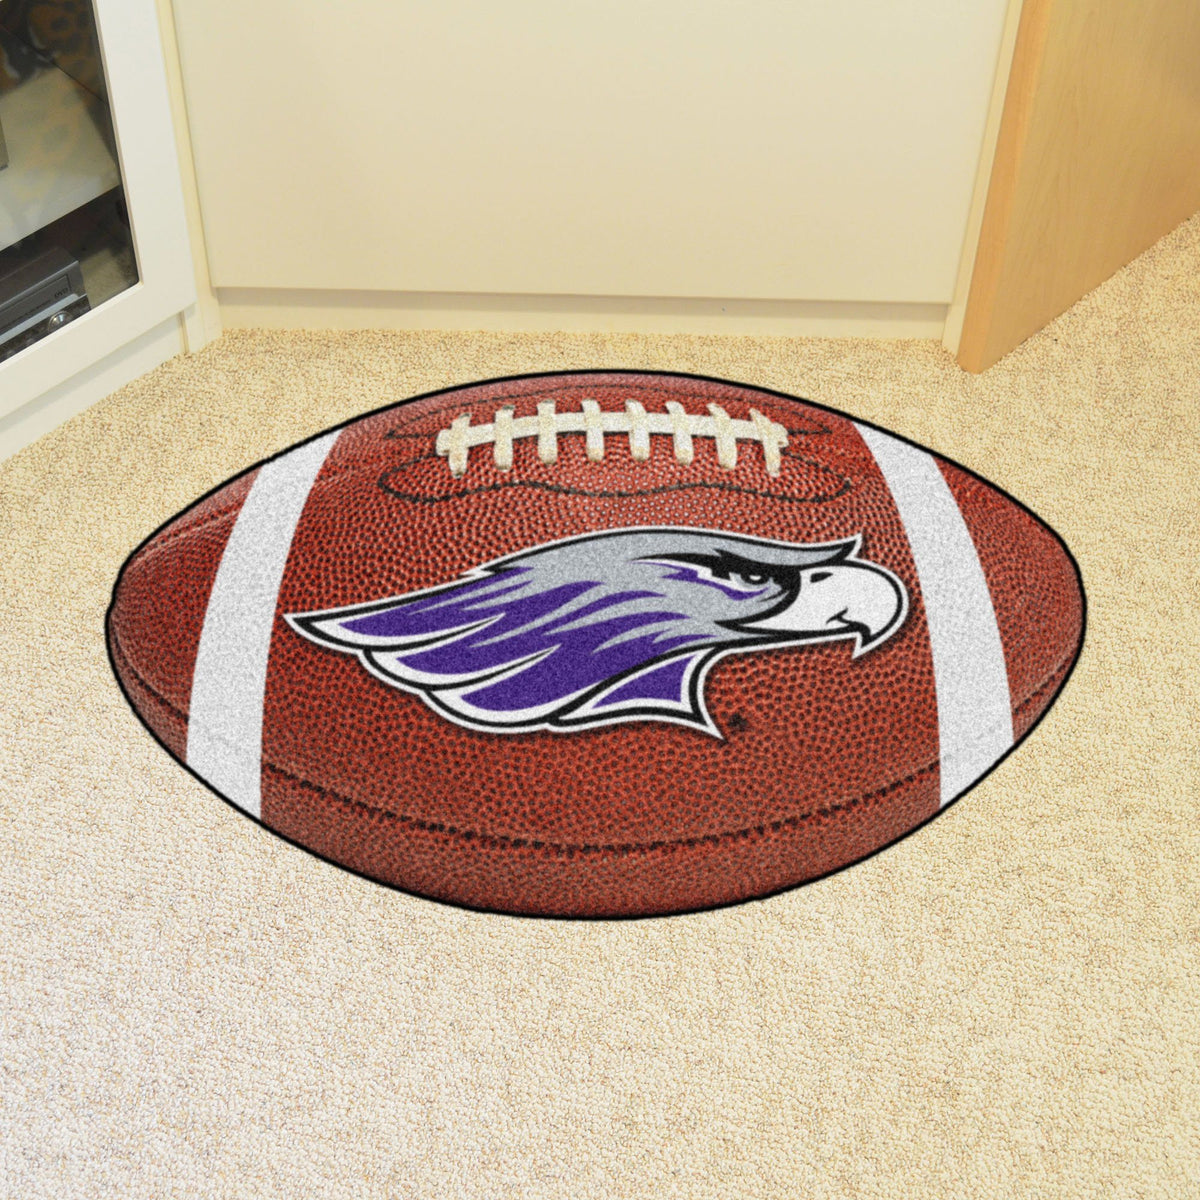 Collegiate - Football Mat: T - Z Collegiate Mats, Rectangular Mats, Football Mat, Collegiate, Home Fan Mats Wisconsin-Whitewater